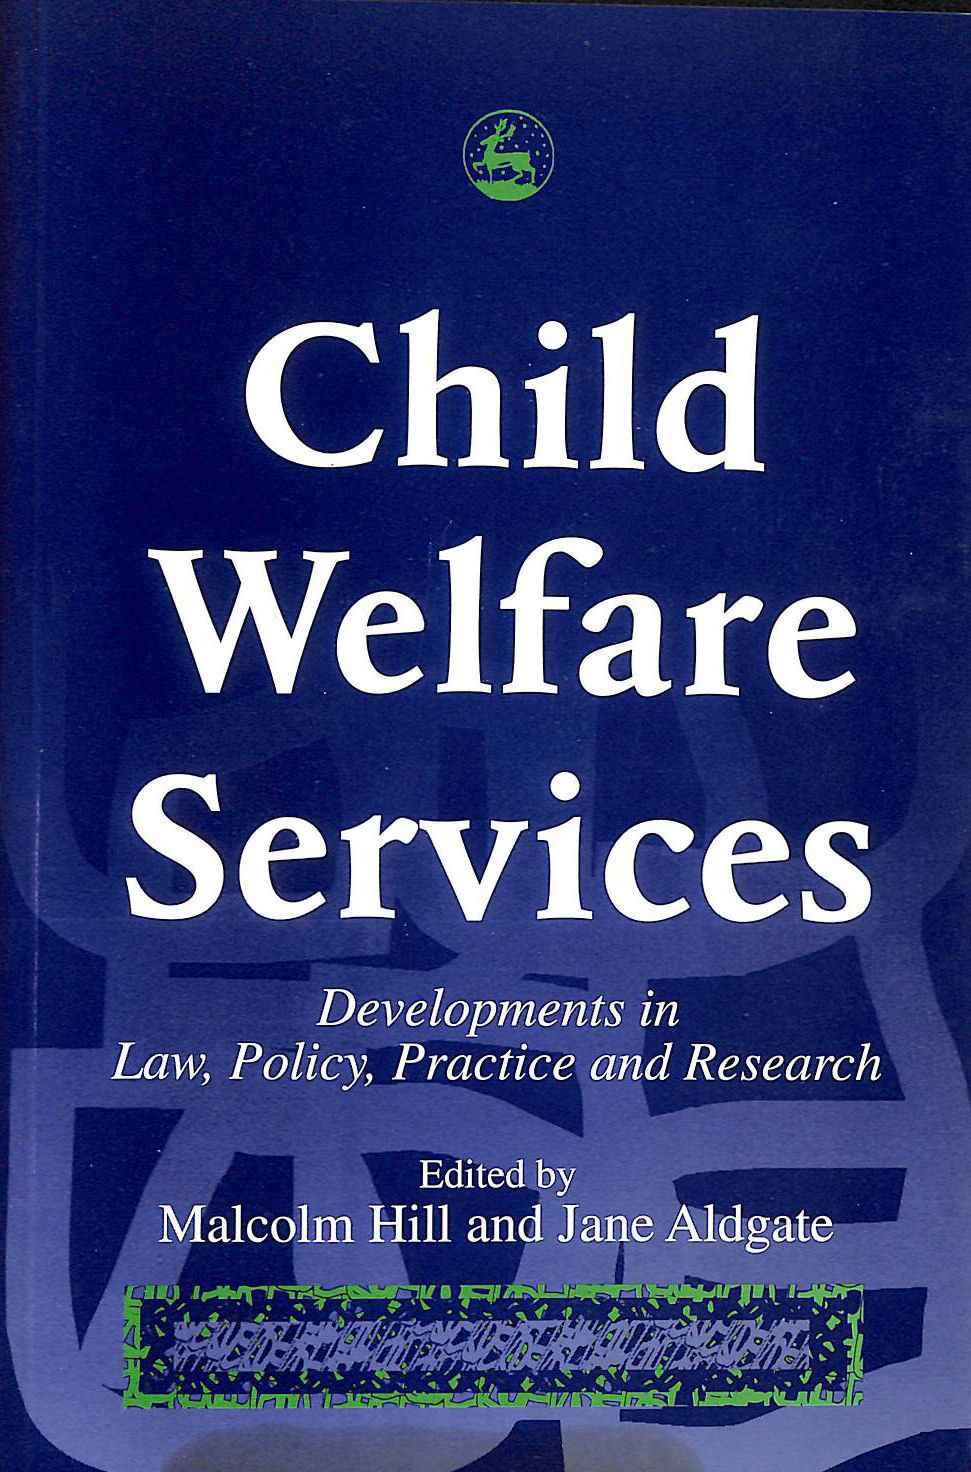 Image for Child Welfare Services: Developments in Law, Policy, Practice and Research